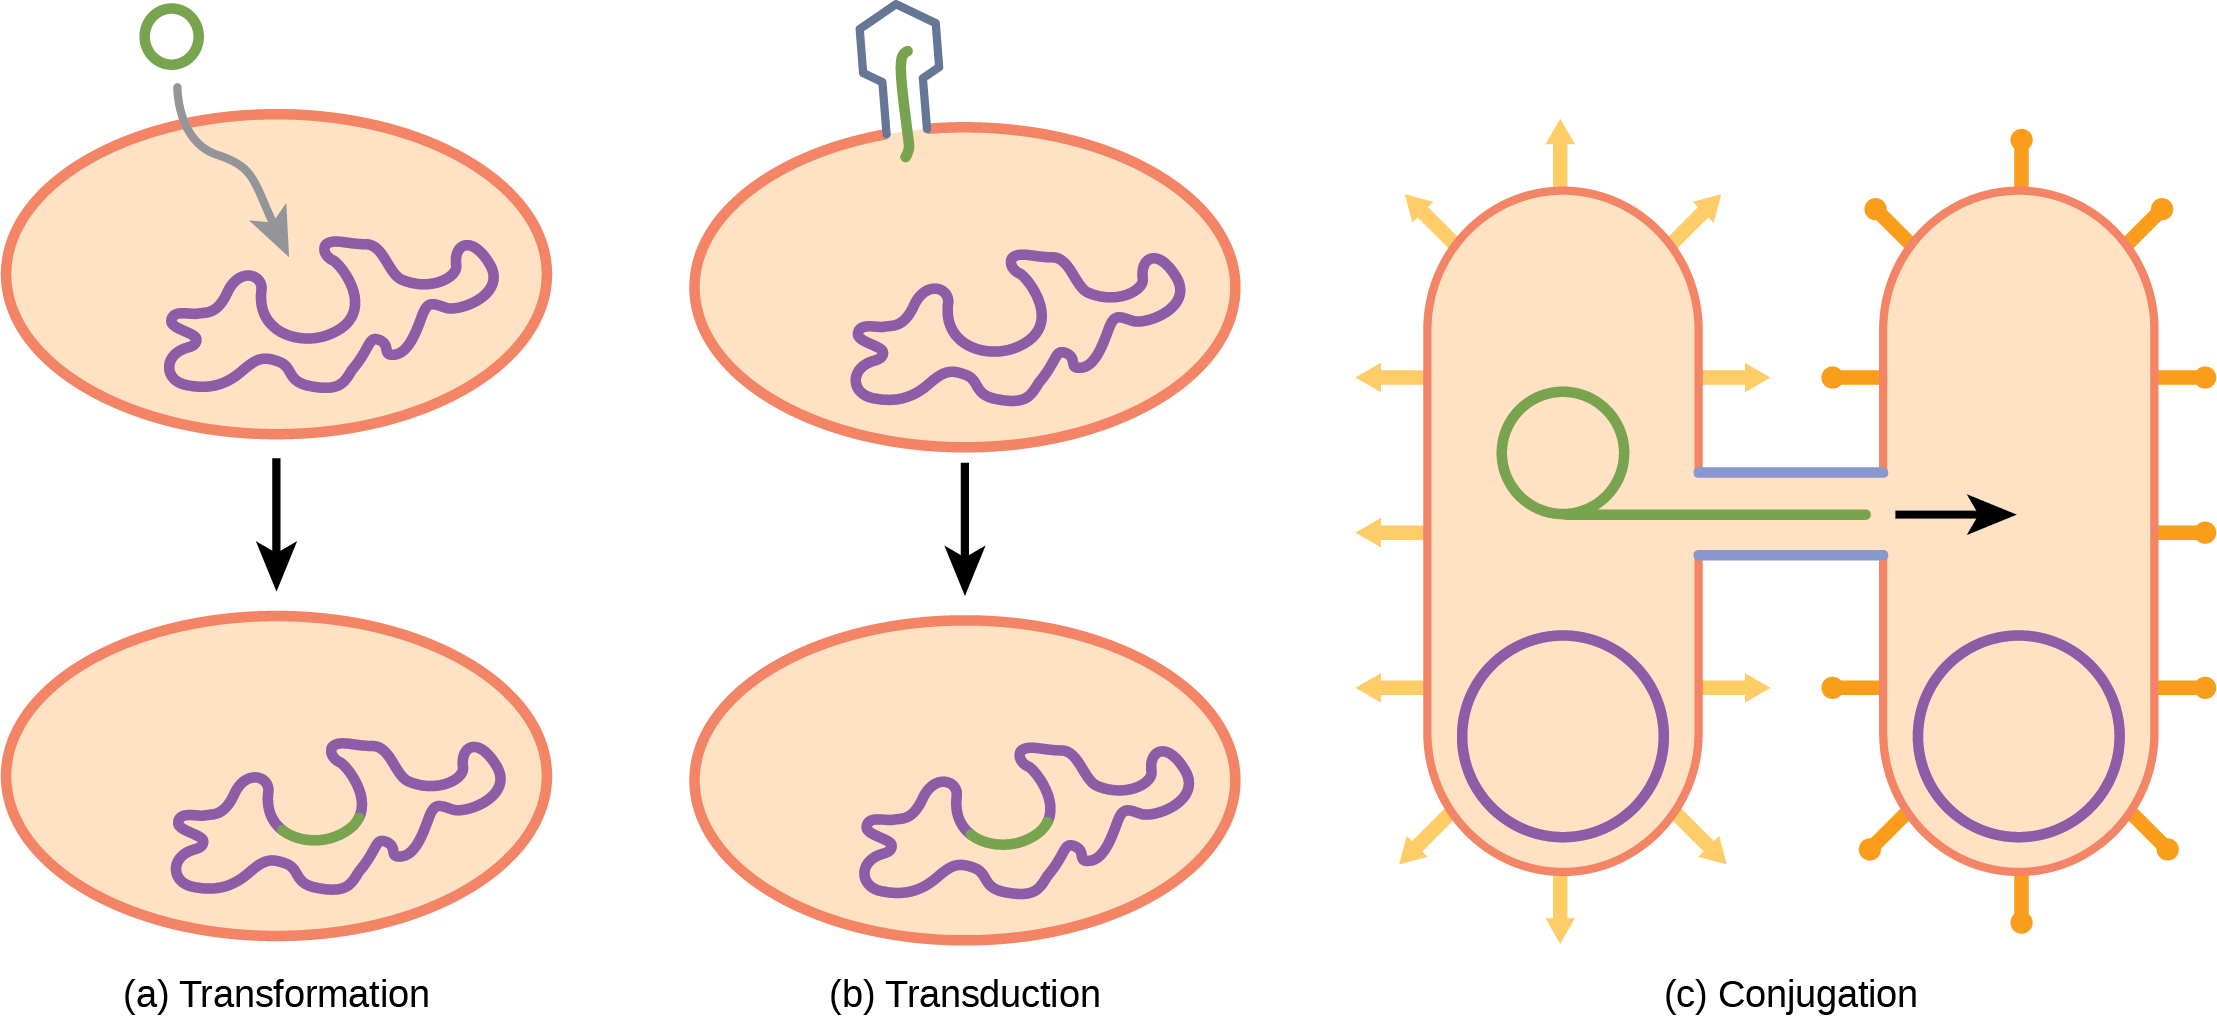 Structure Of Prokaryotes Bacteria And Archaea Openstax Biology 2e Review Prokaryotic Cells Illustration A Shows Small Circular Piece Dna Being Absorbed By Cell